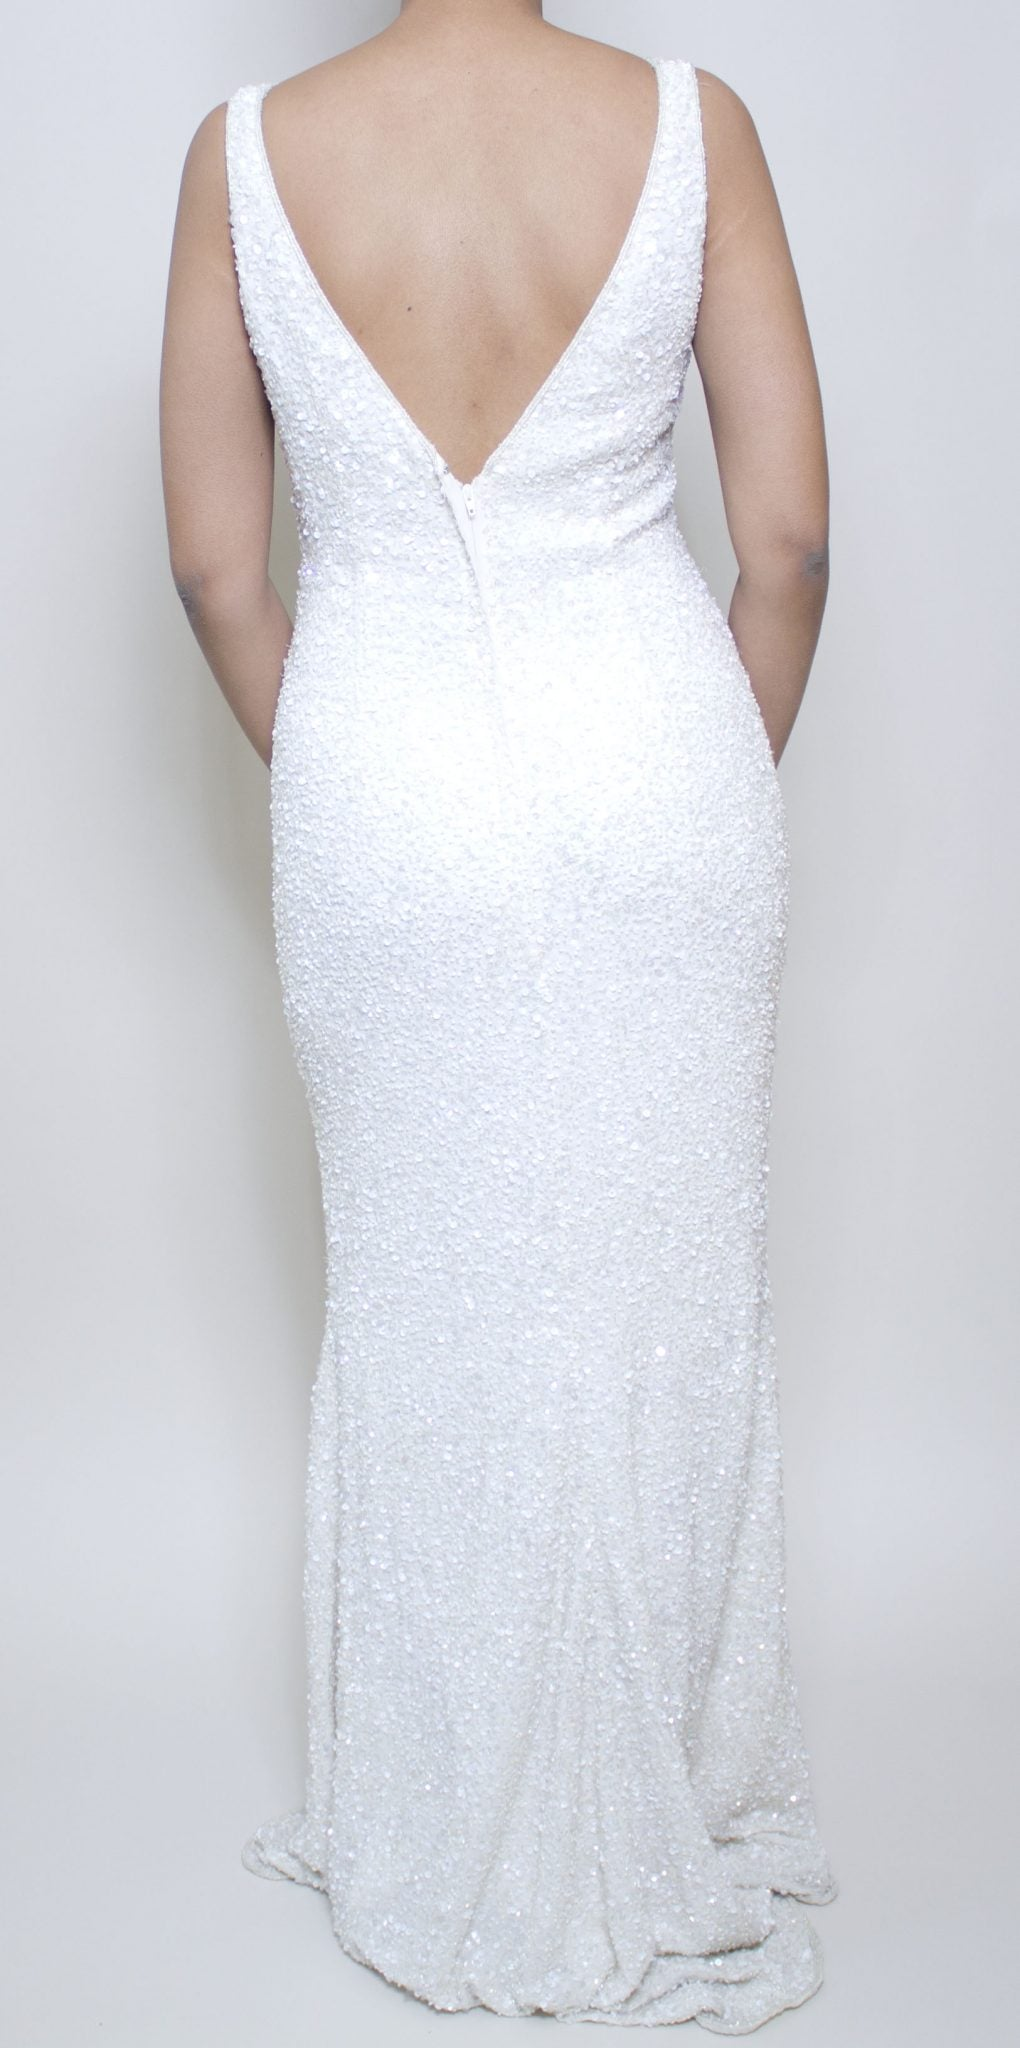 Icicle Sequin Dress